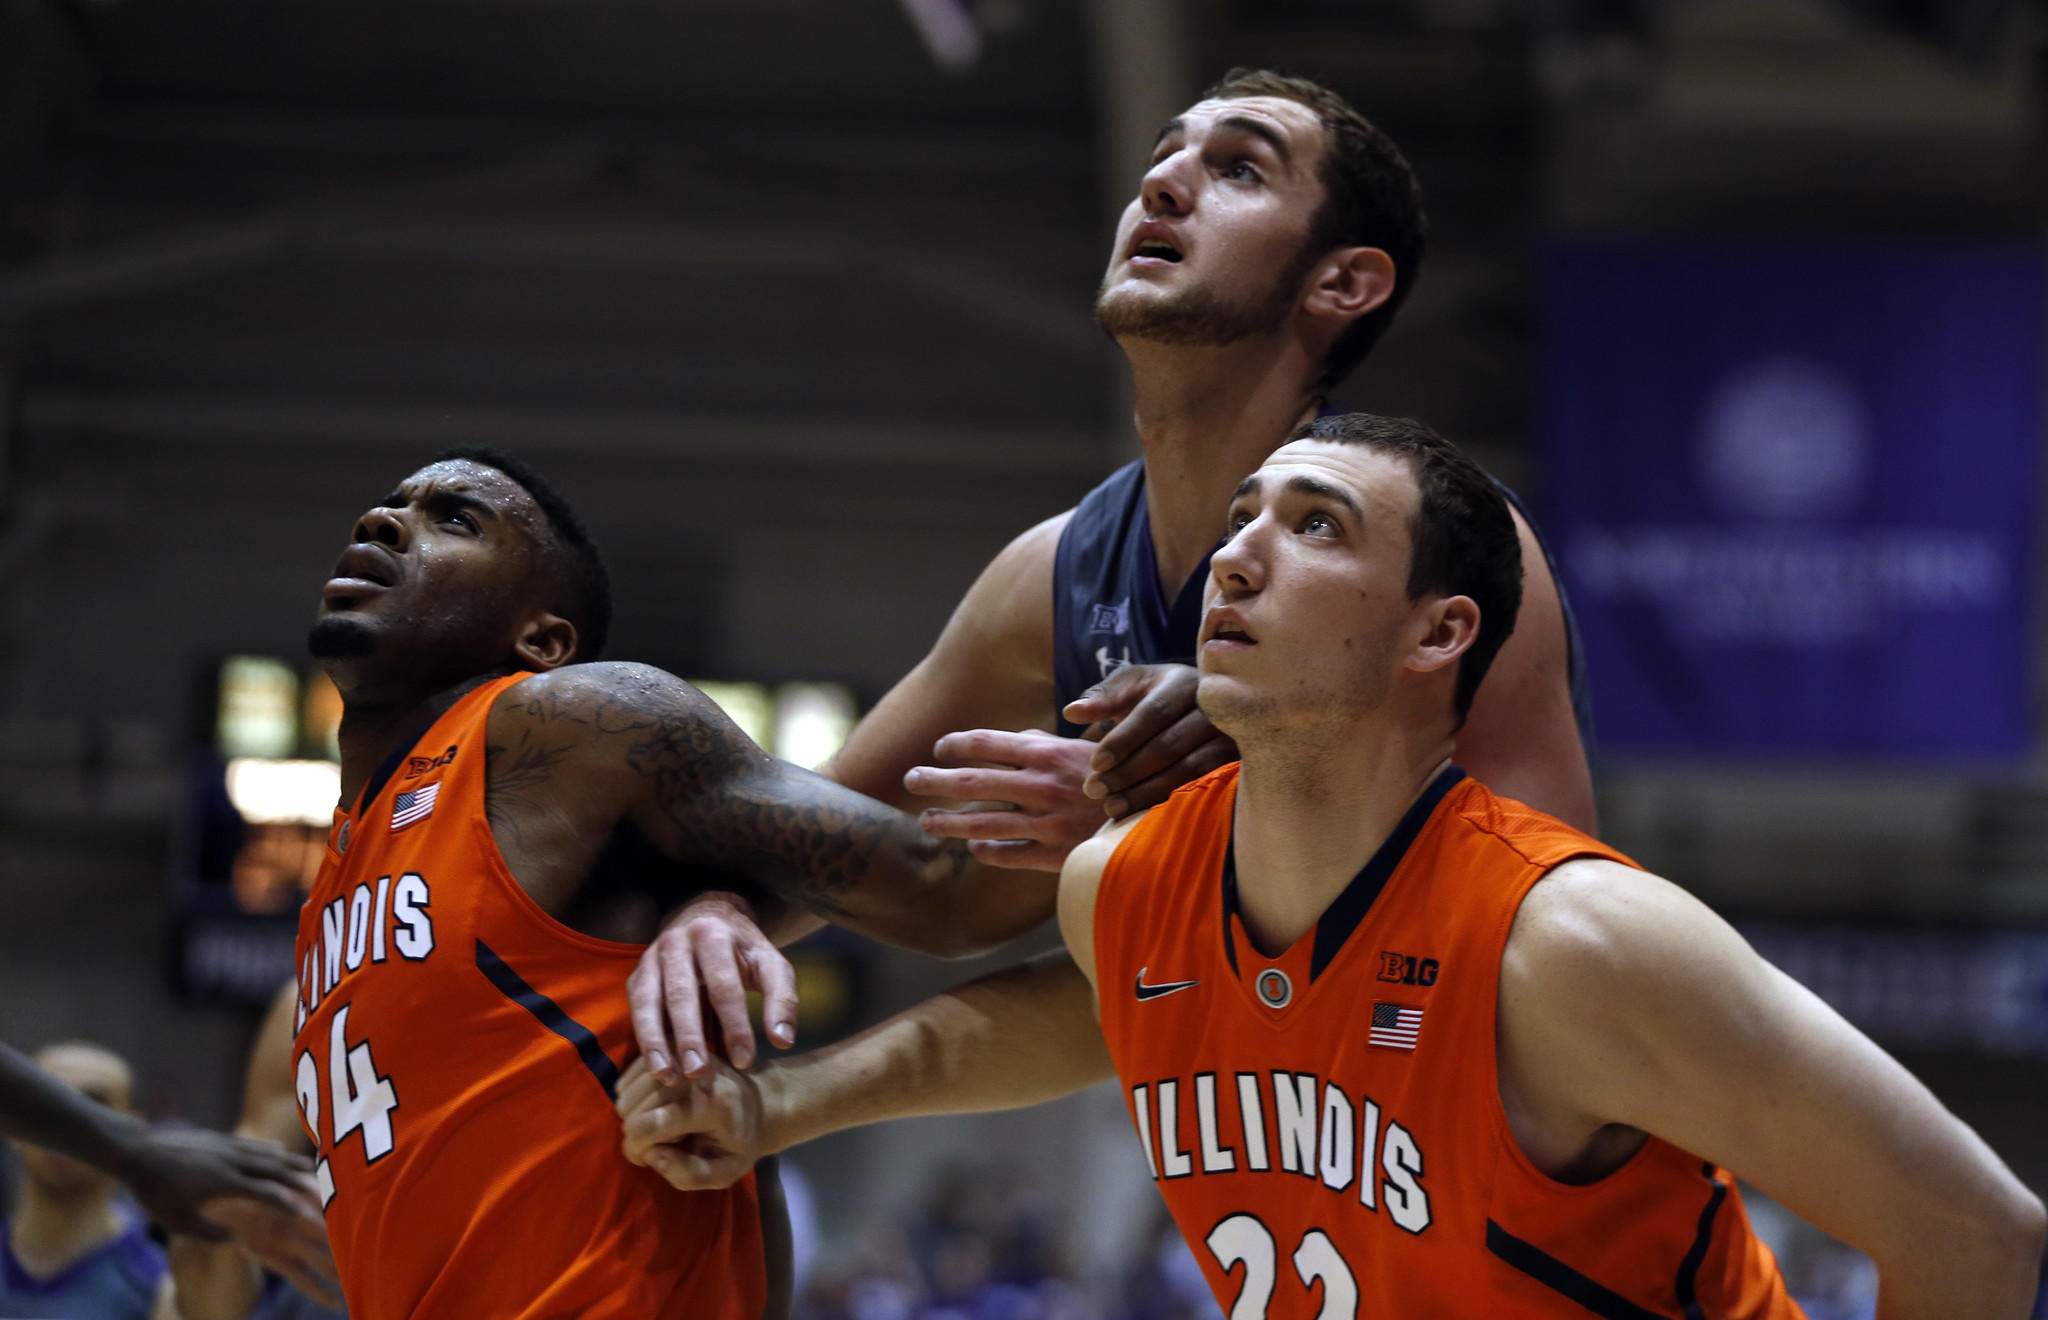 Illinois' Rayvonte Rice (24) and Maverick Morgan (22) box out Northwestern's Alex Olah during Sunday's game.